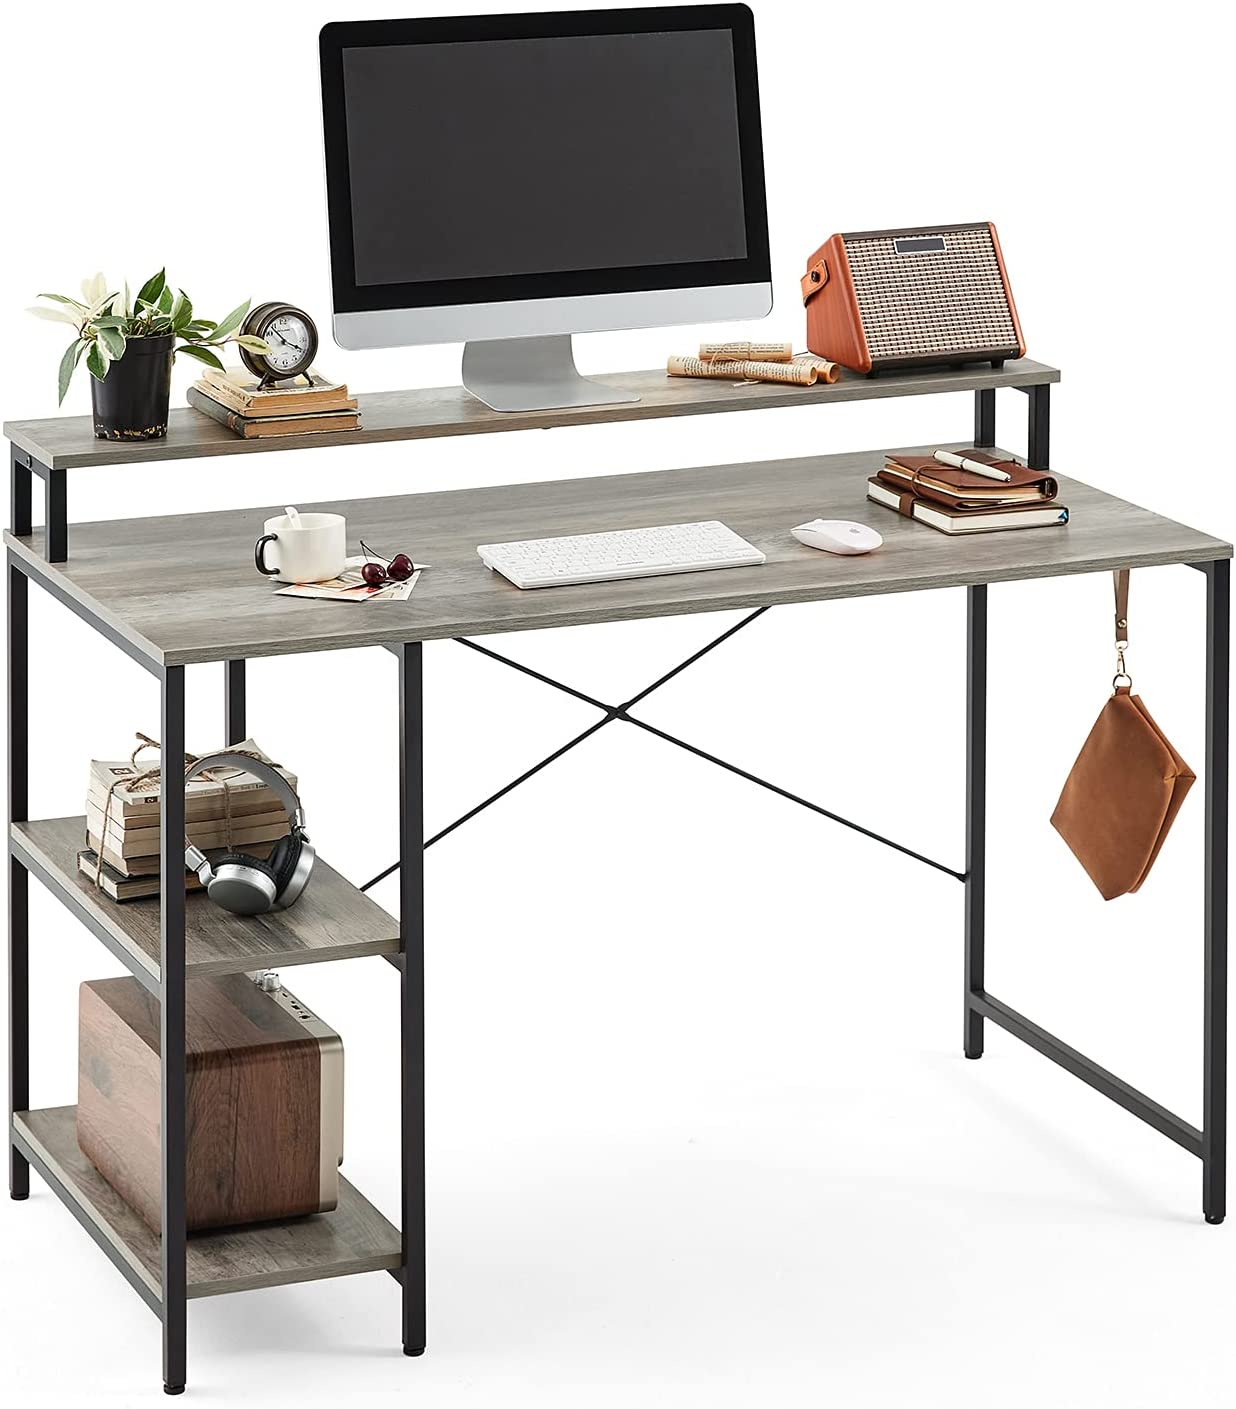 Linsy Home Computer Desk with Simple Shelves, 47 Inch Writing Laptop Table for Office Home Small Space, LS209V2-B with Monitor Stand, Grey